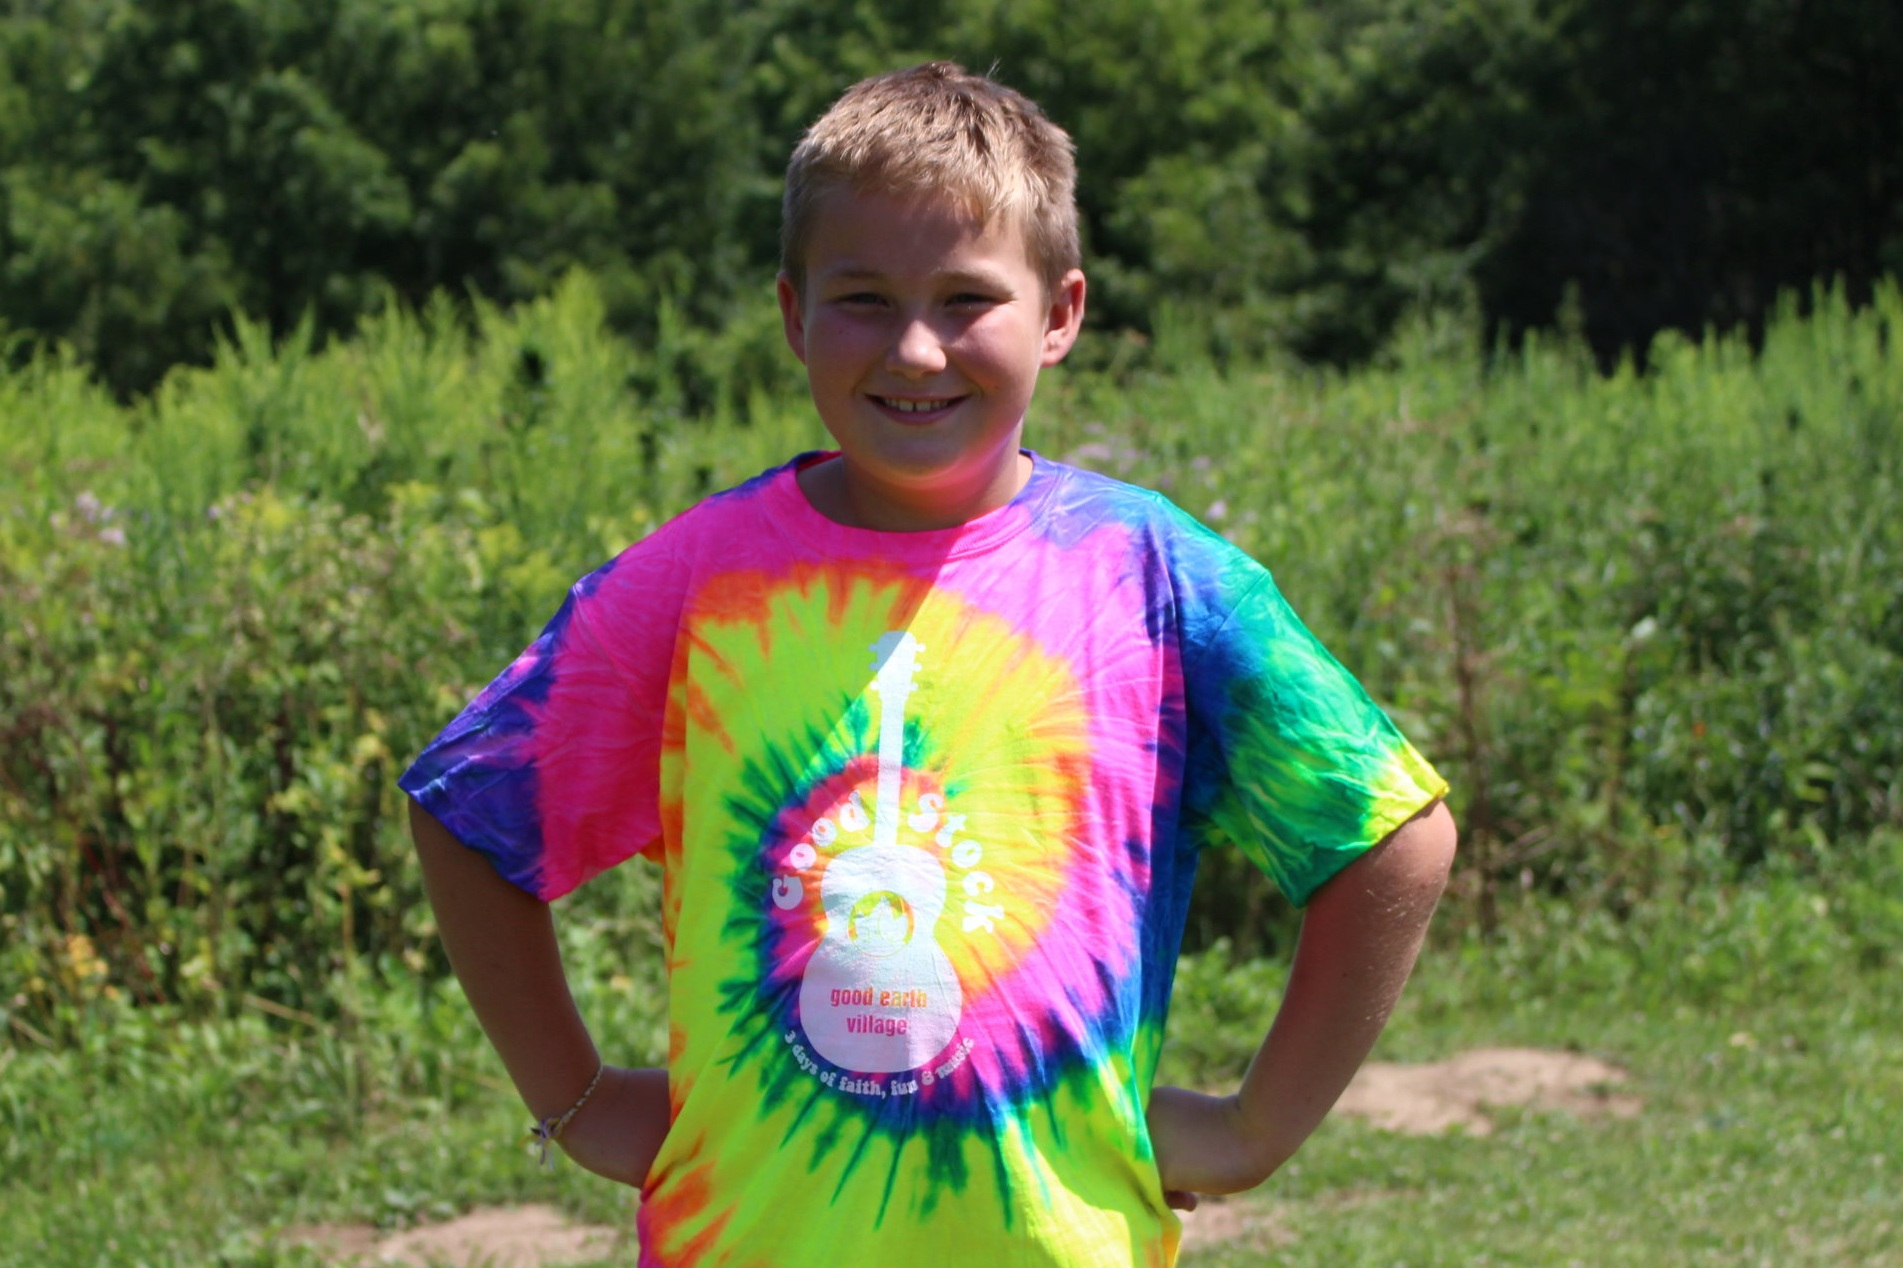 Item:  GoodStock Rainbow Tie-Dye T-Shirt  Sizes:  Youth Small - Youth Large  Price:  $20